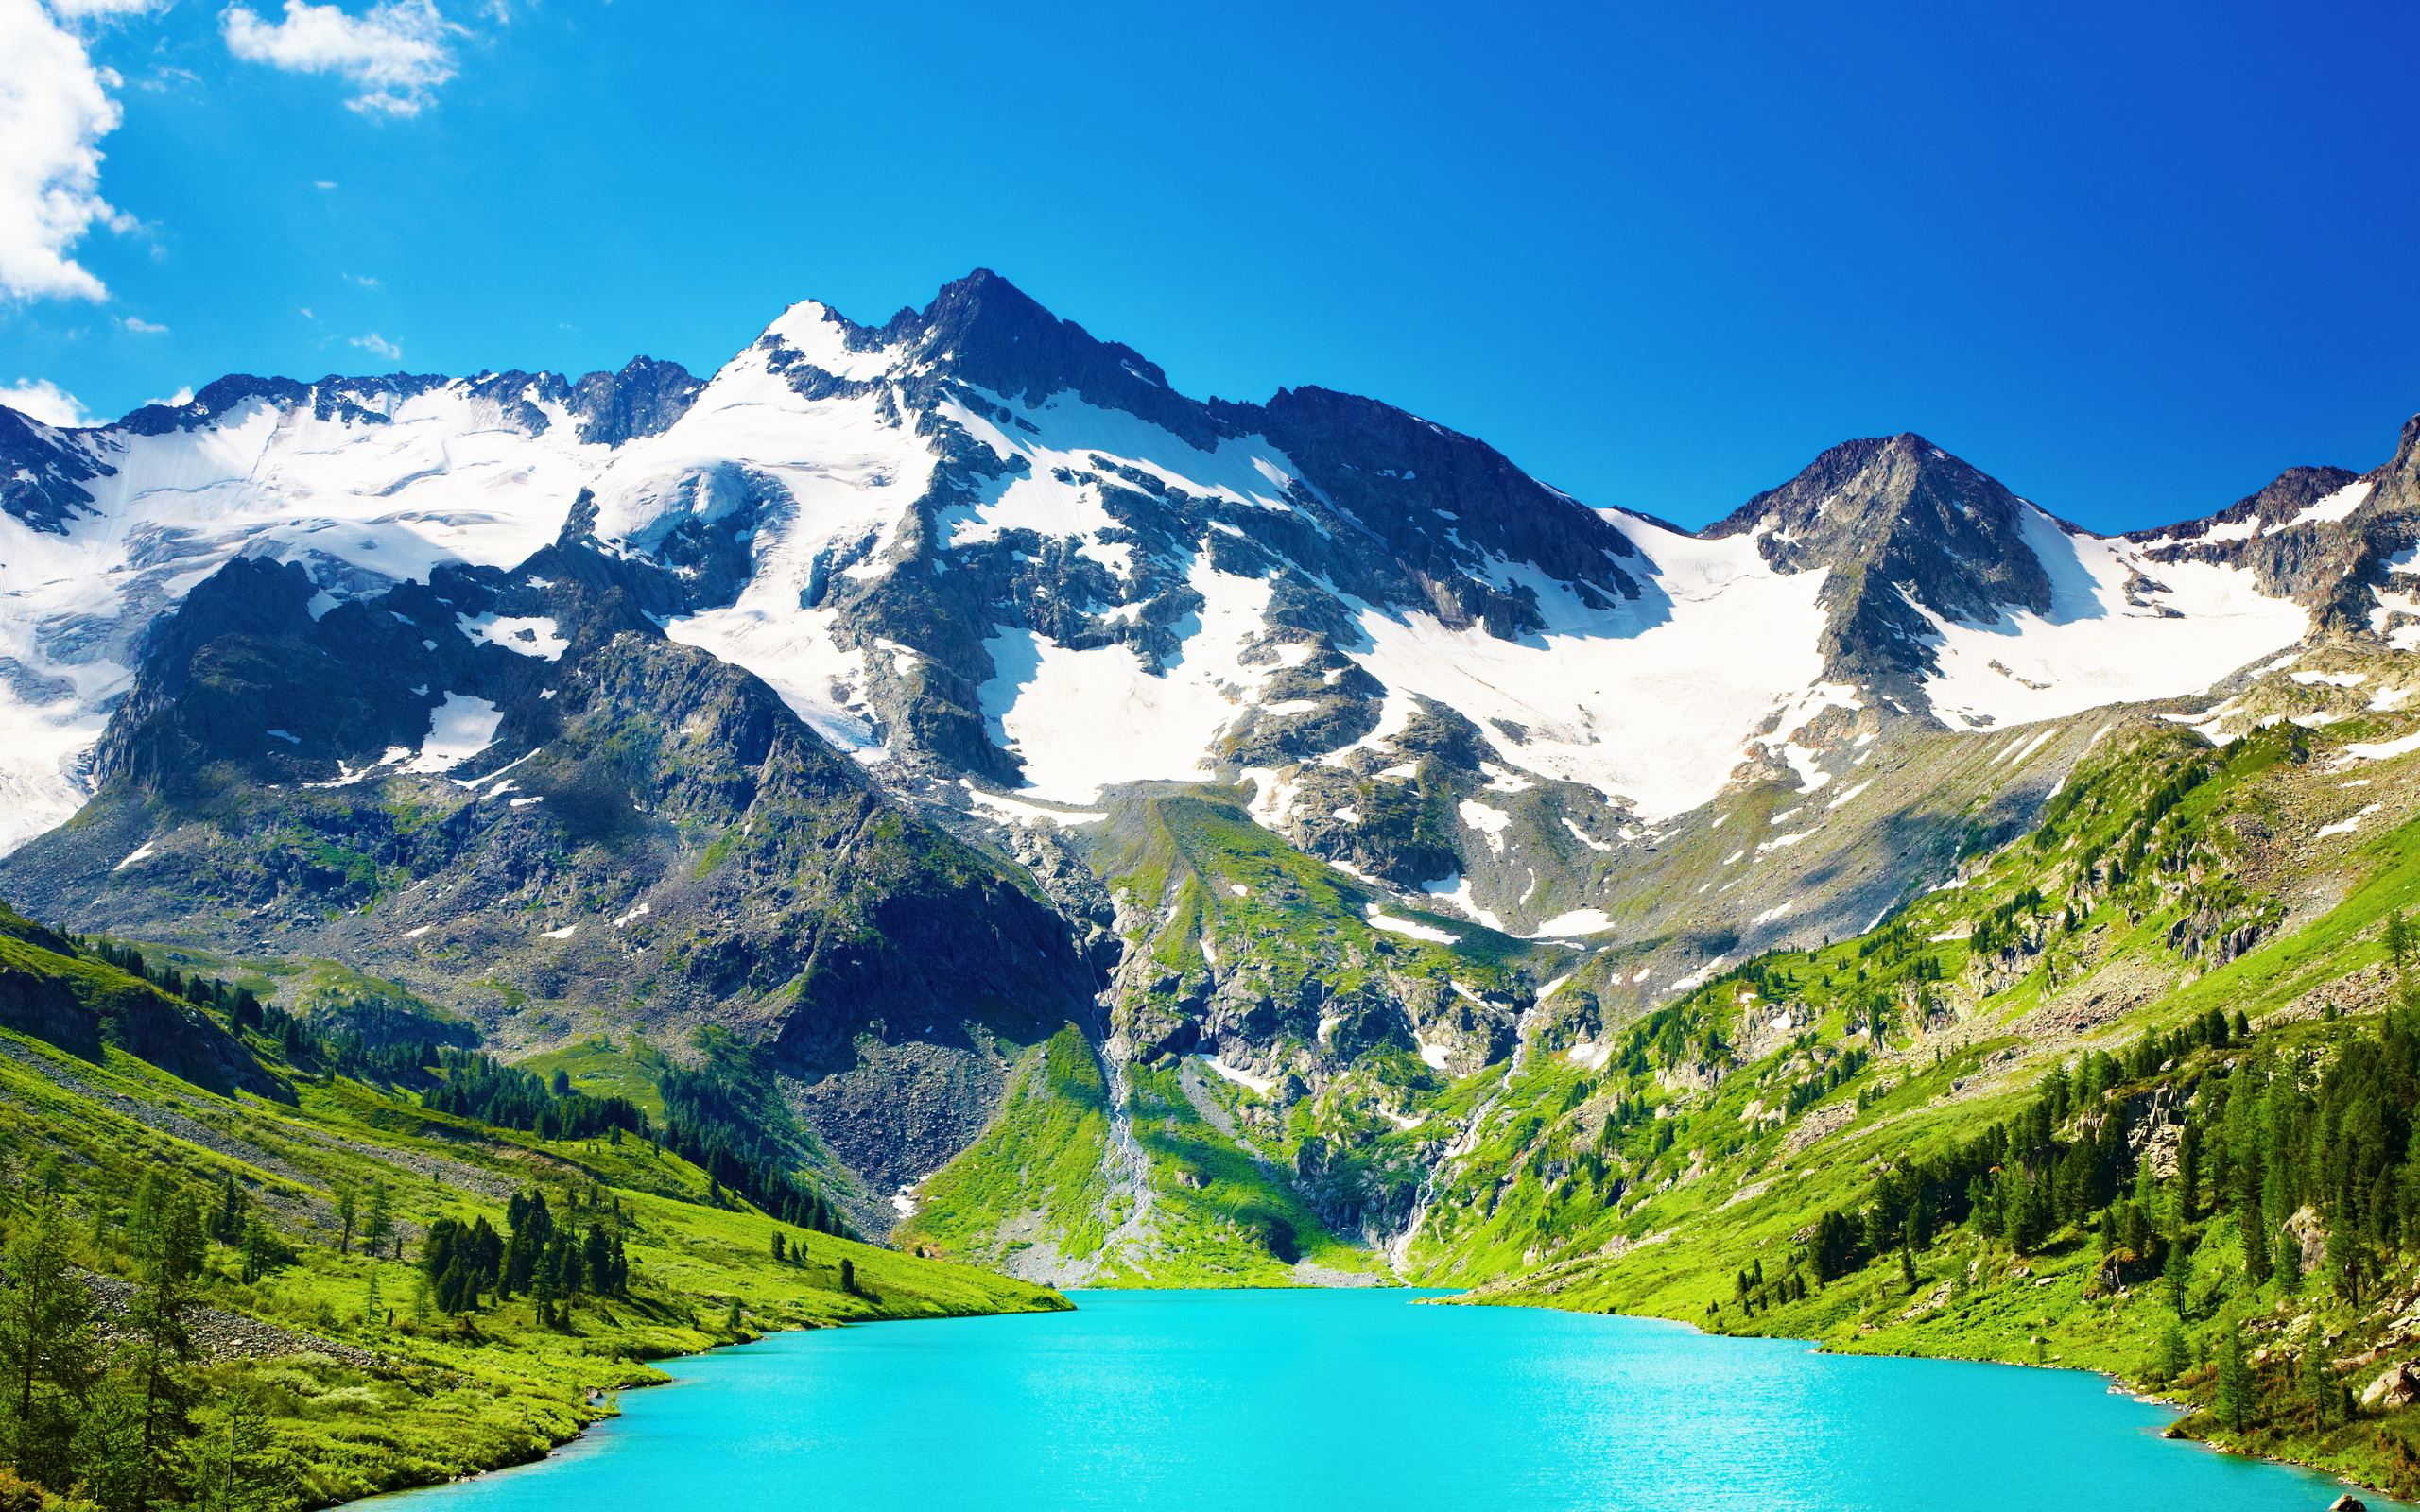 Blue lake mountains scenery